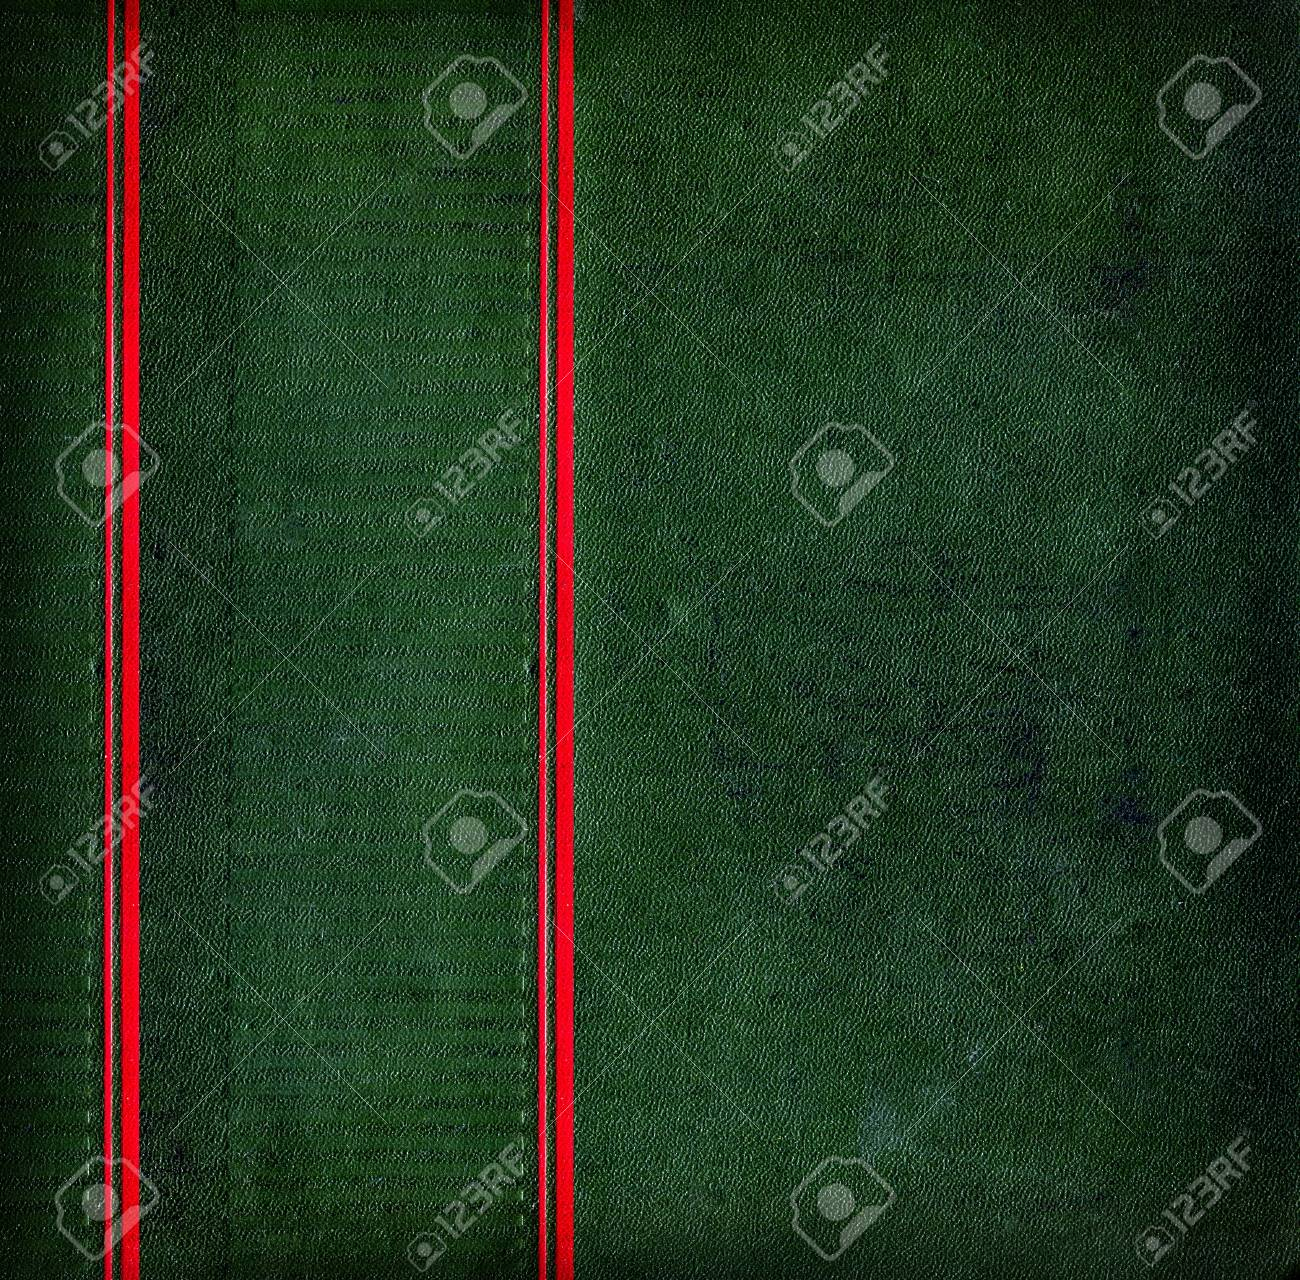 Vintage Green Texture with two red vertical strips Stock Photo - 21666118